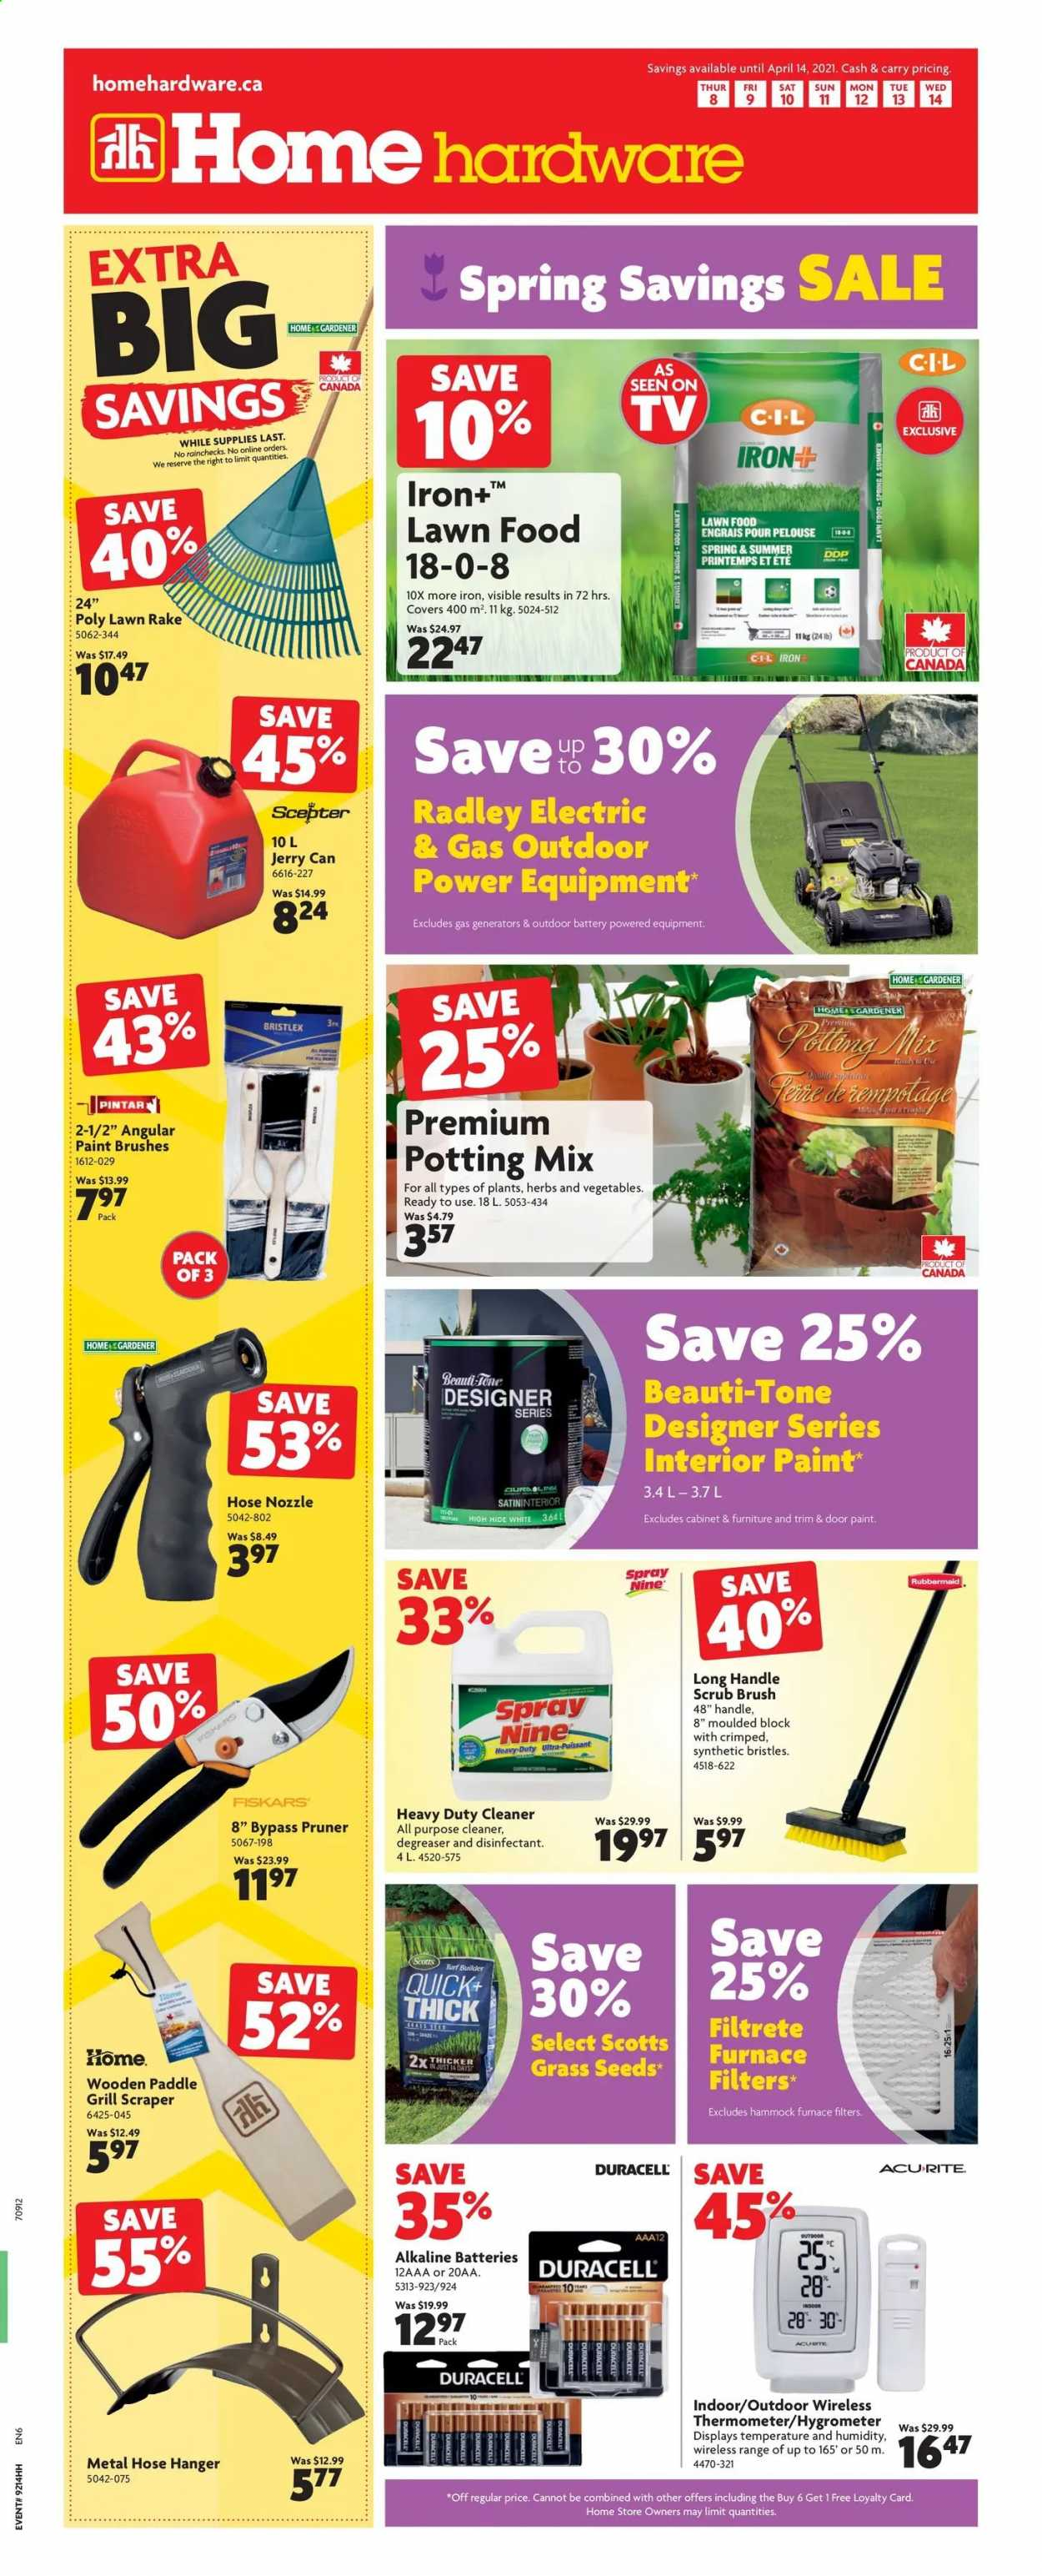 Home Hardware Flyer  - April 08, 2021 - April 14, 2021. Page 1.